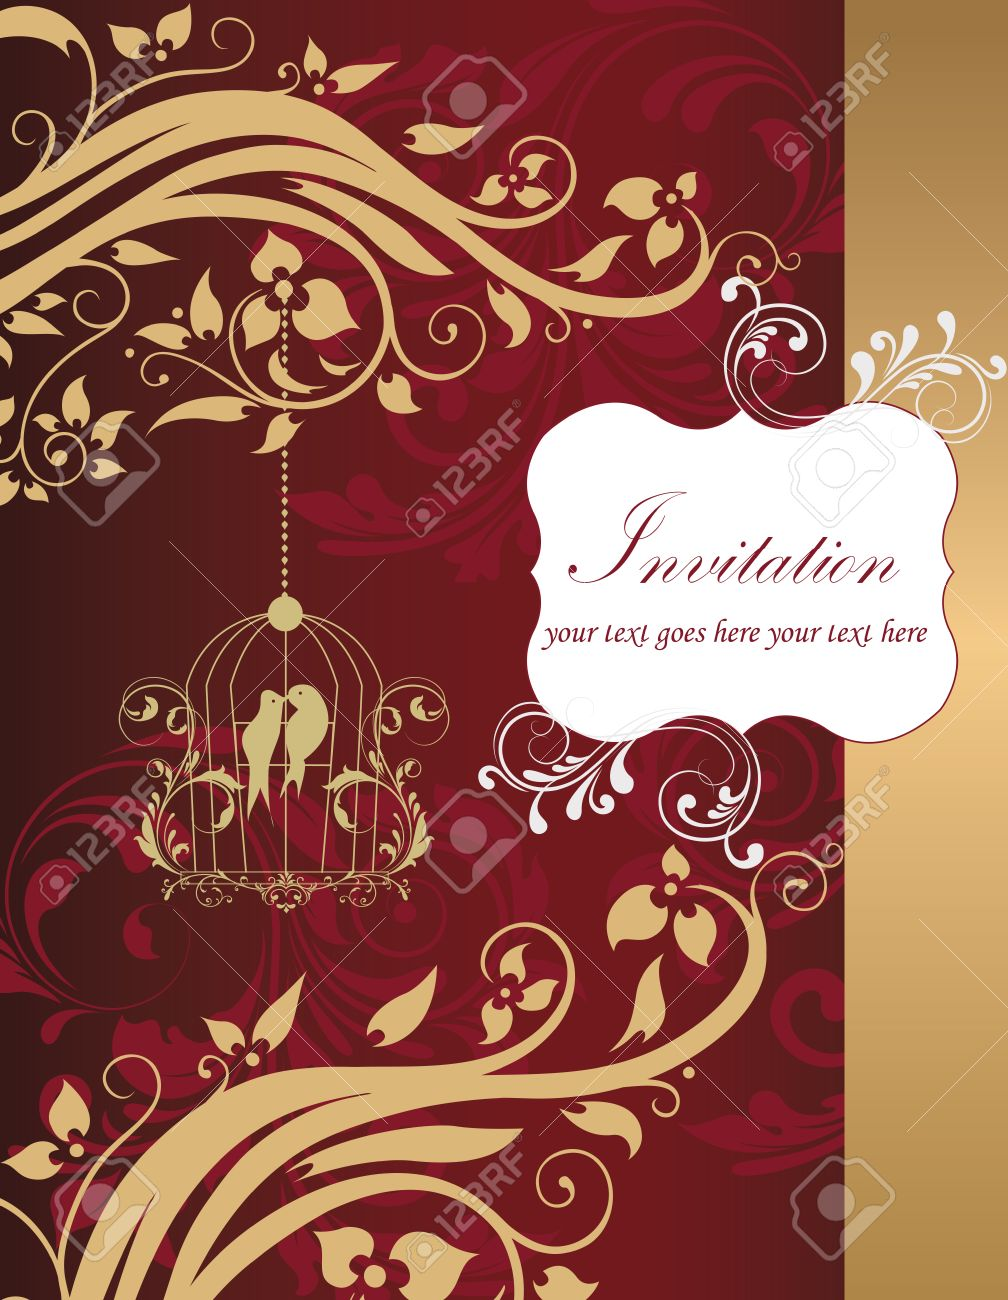 Vintage Invitation Card With Ornate Elegant Retro Abstract Floral